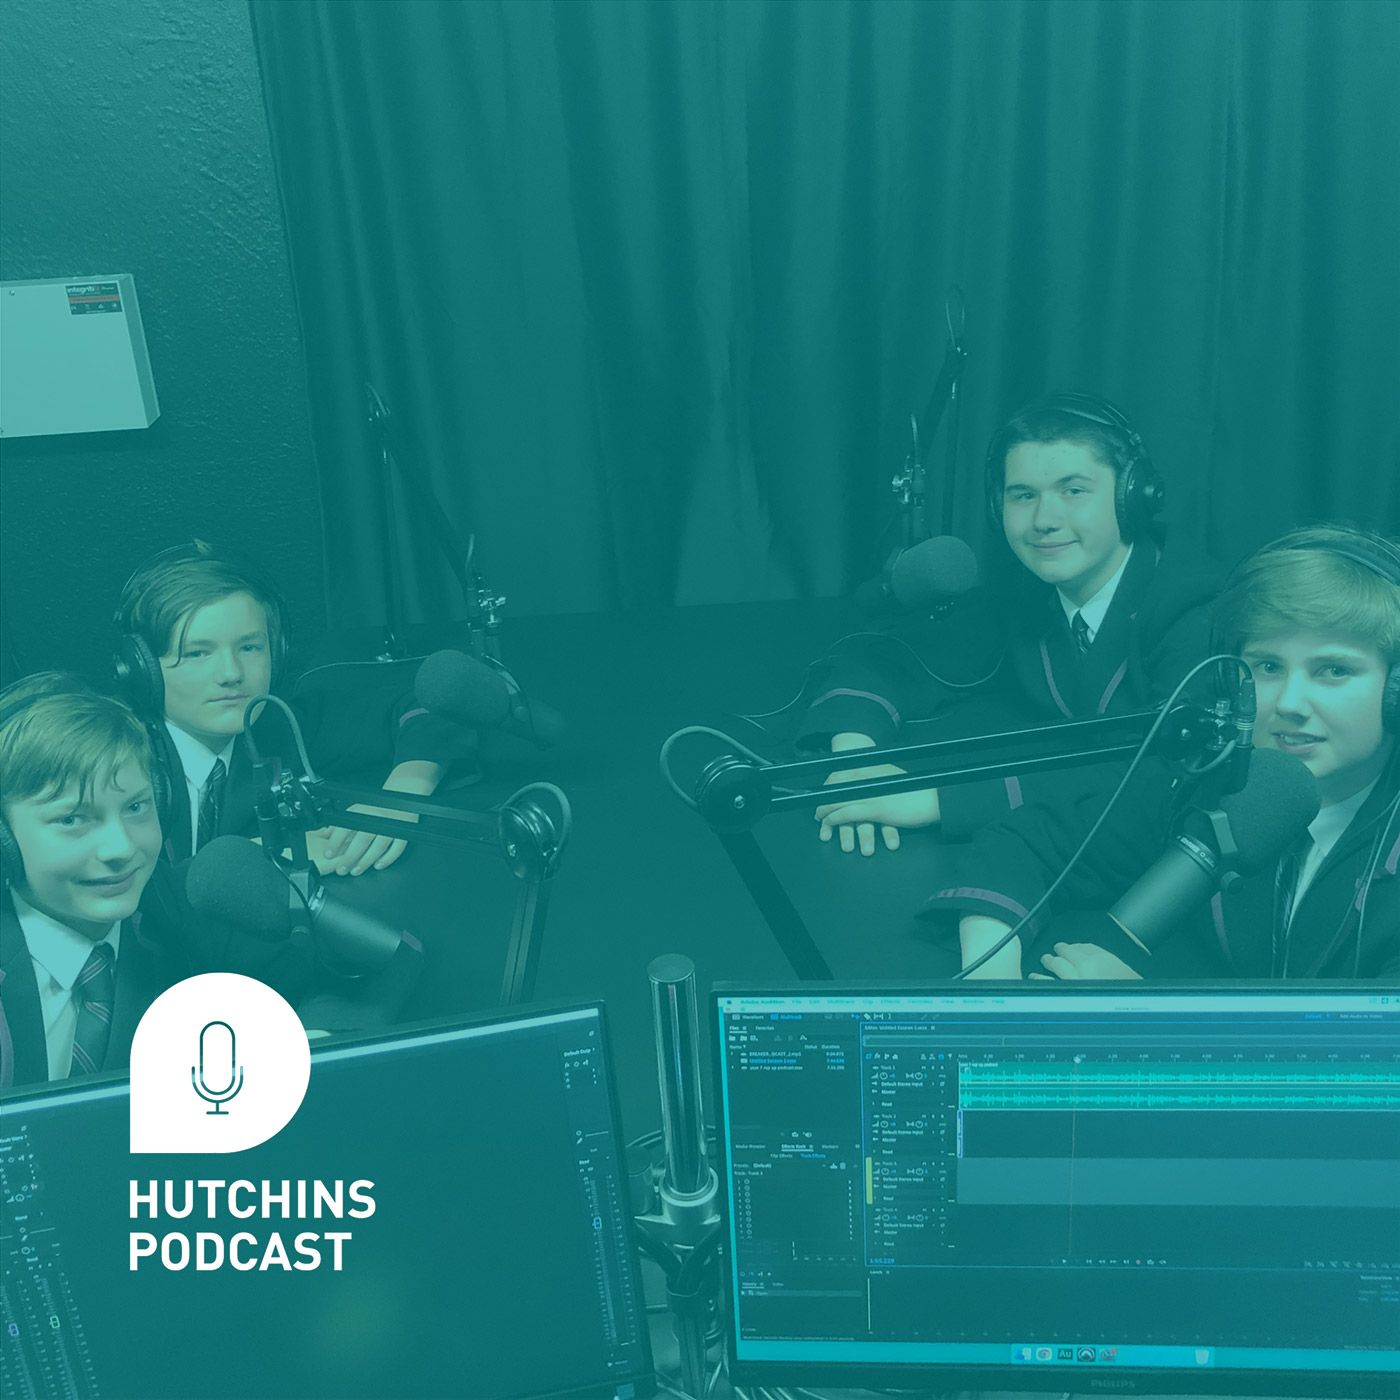 Hutchins Podcast – Year 7 Wrap Up 2020